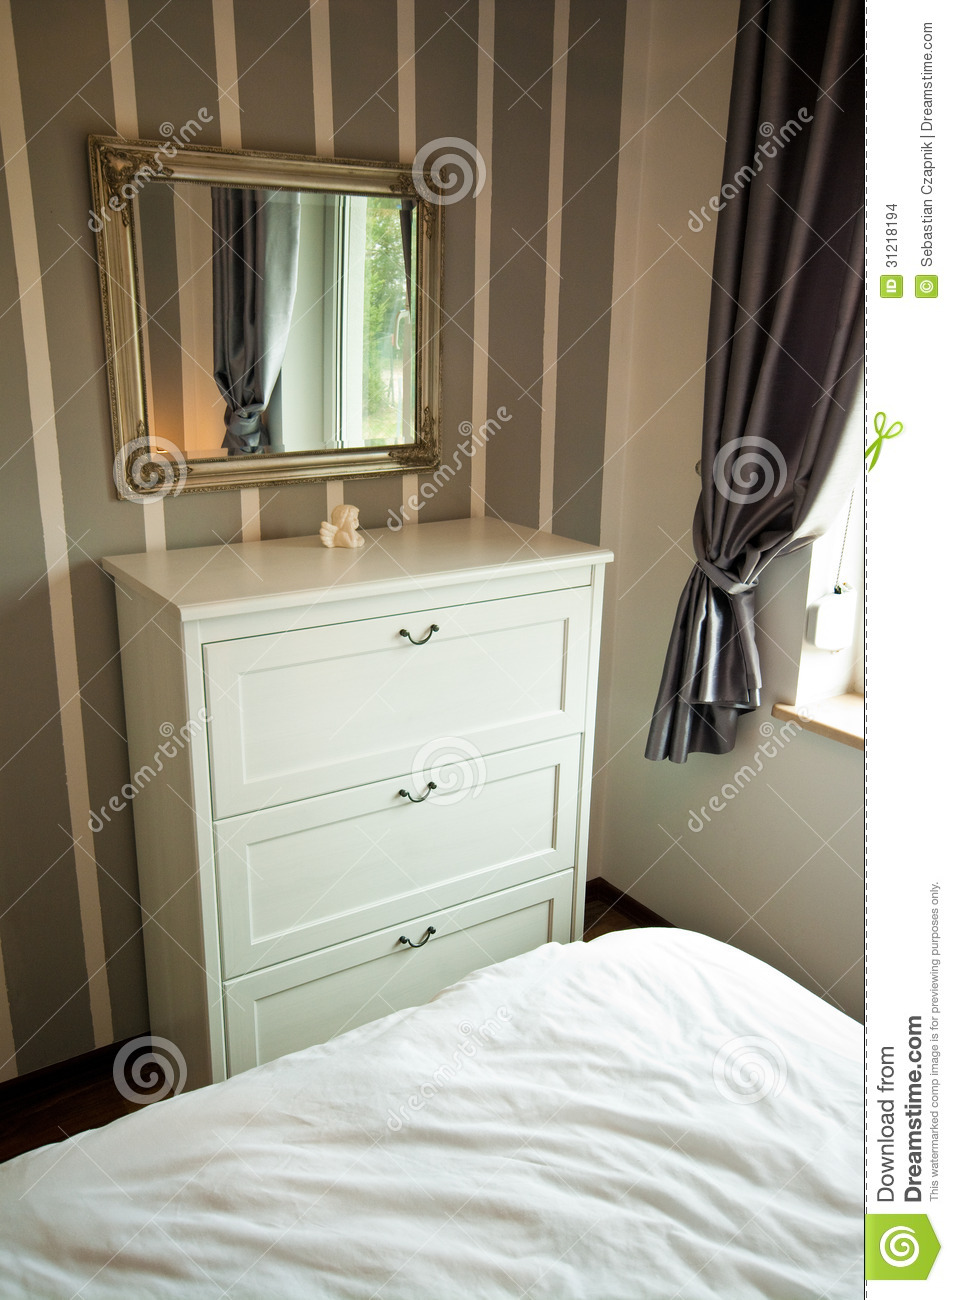 Bedroom cabinet with drawers and mirror stock photo for Bedroom wall cabinet with mirror